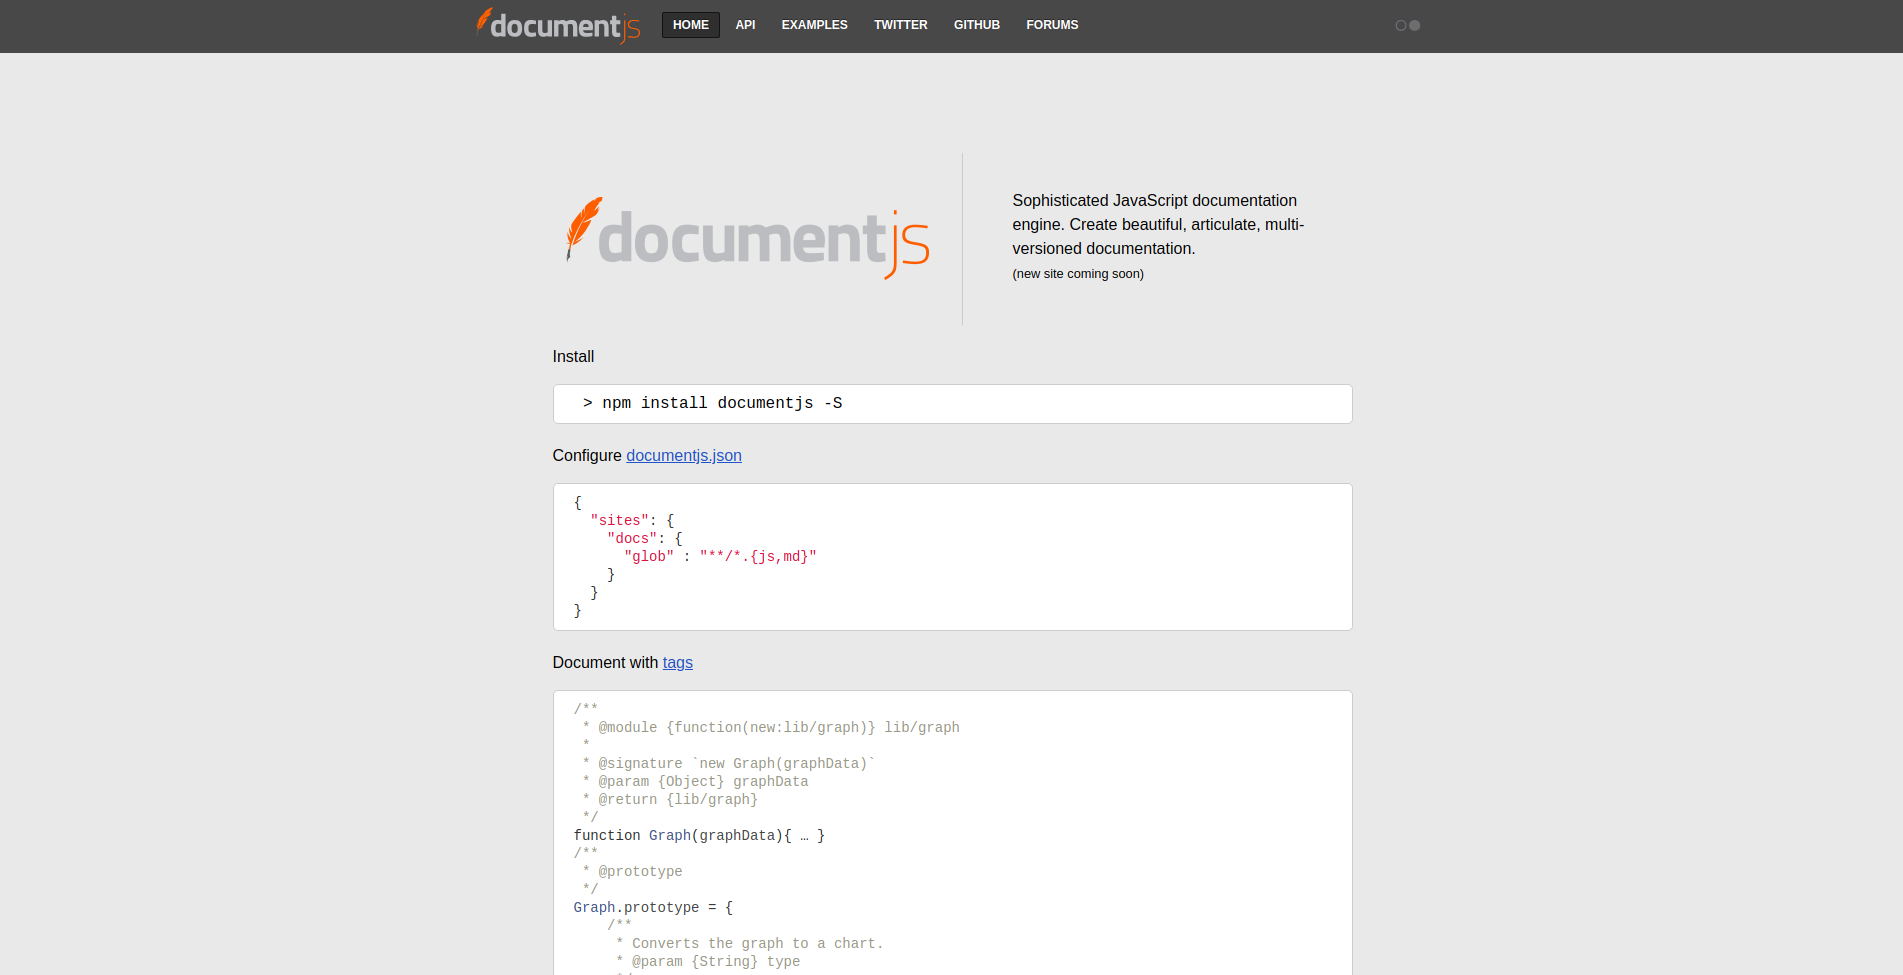 Let's talk JS ⚡: documentation